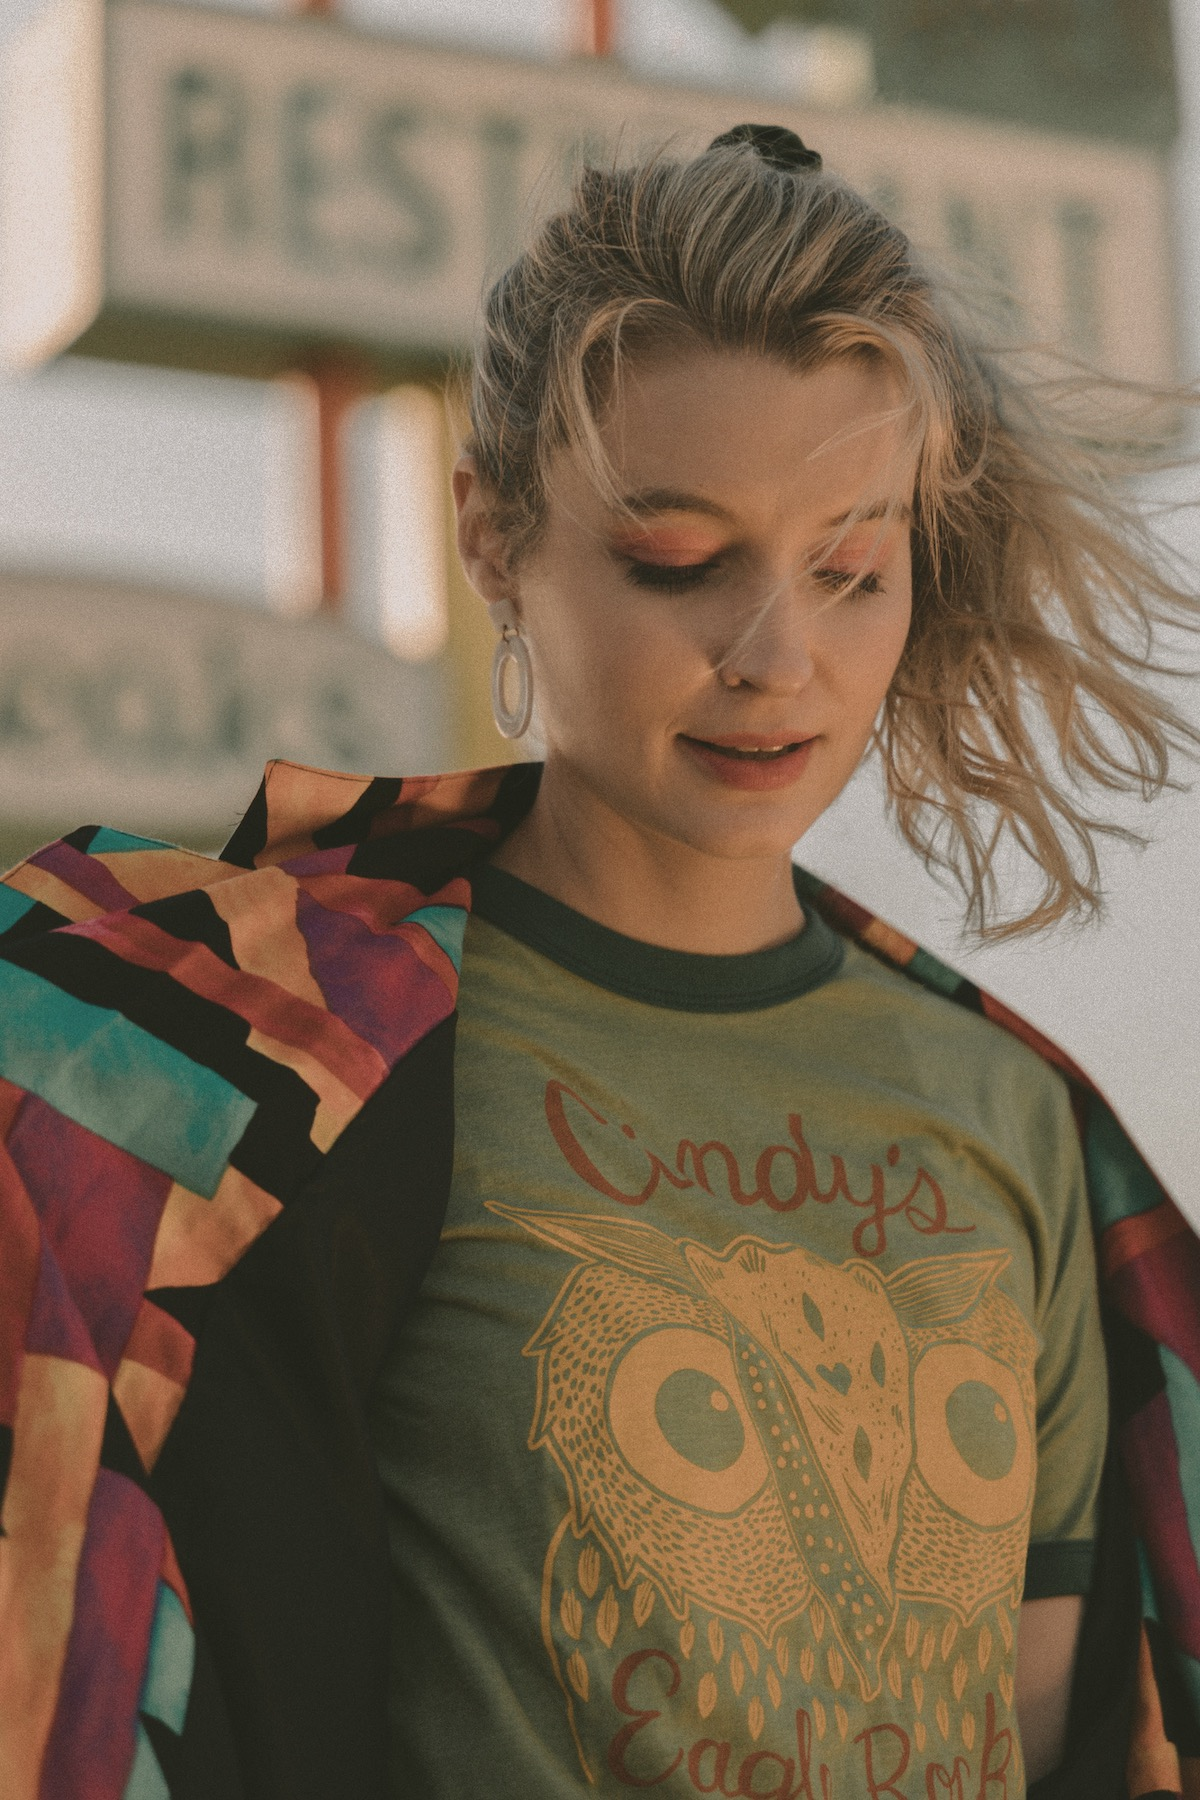 As Total Brutal, Emily Moore brings a professional wherewithal, albeit with a fun, quirky levity, to her own insatiably catchy, expertly-produced songs.